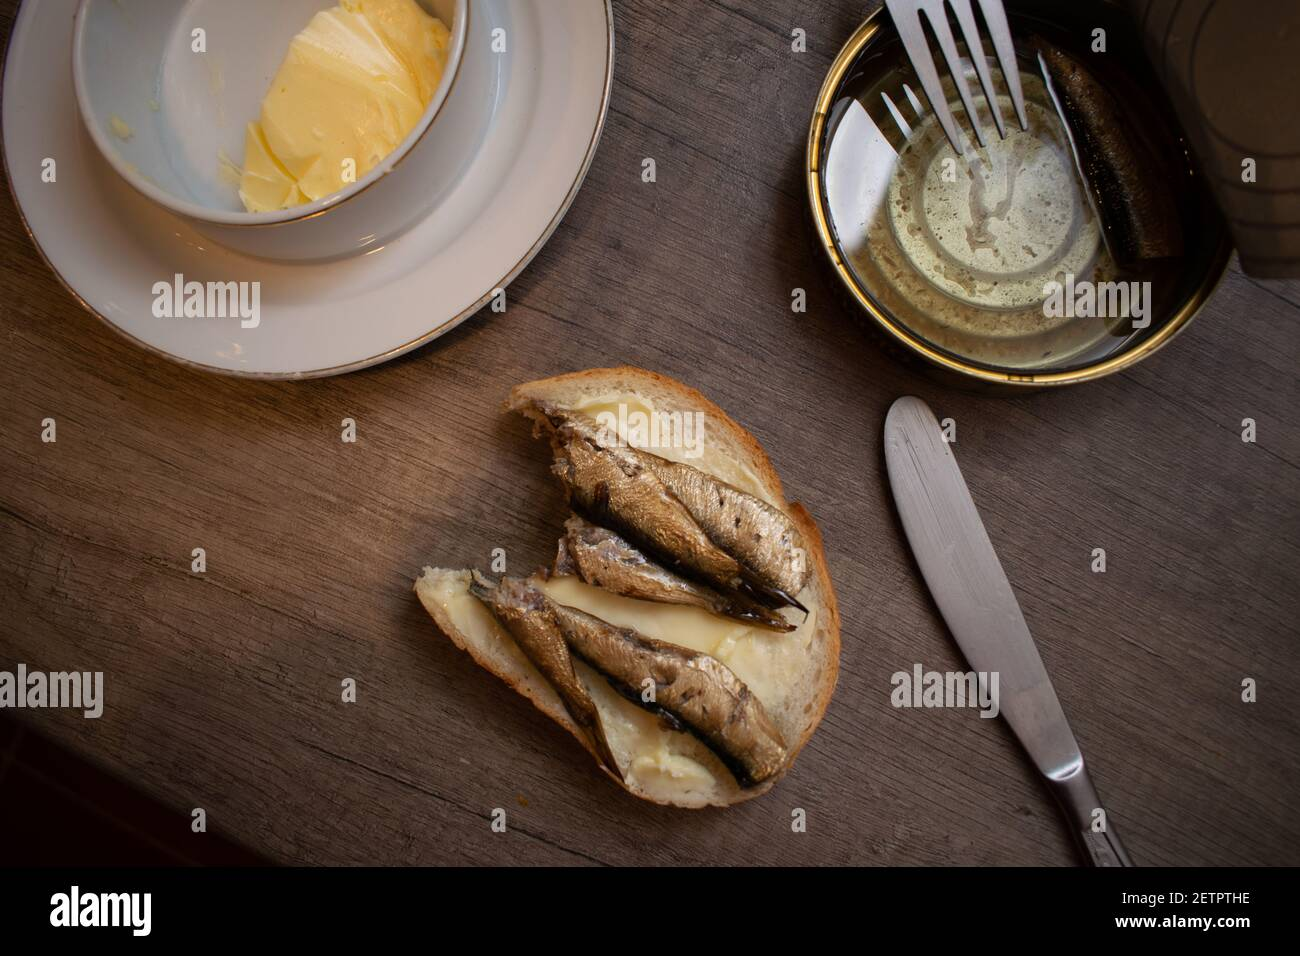 Latvian Bread High Resolution Stock Photography And Images Alamy